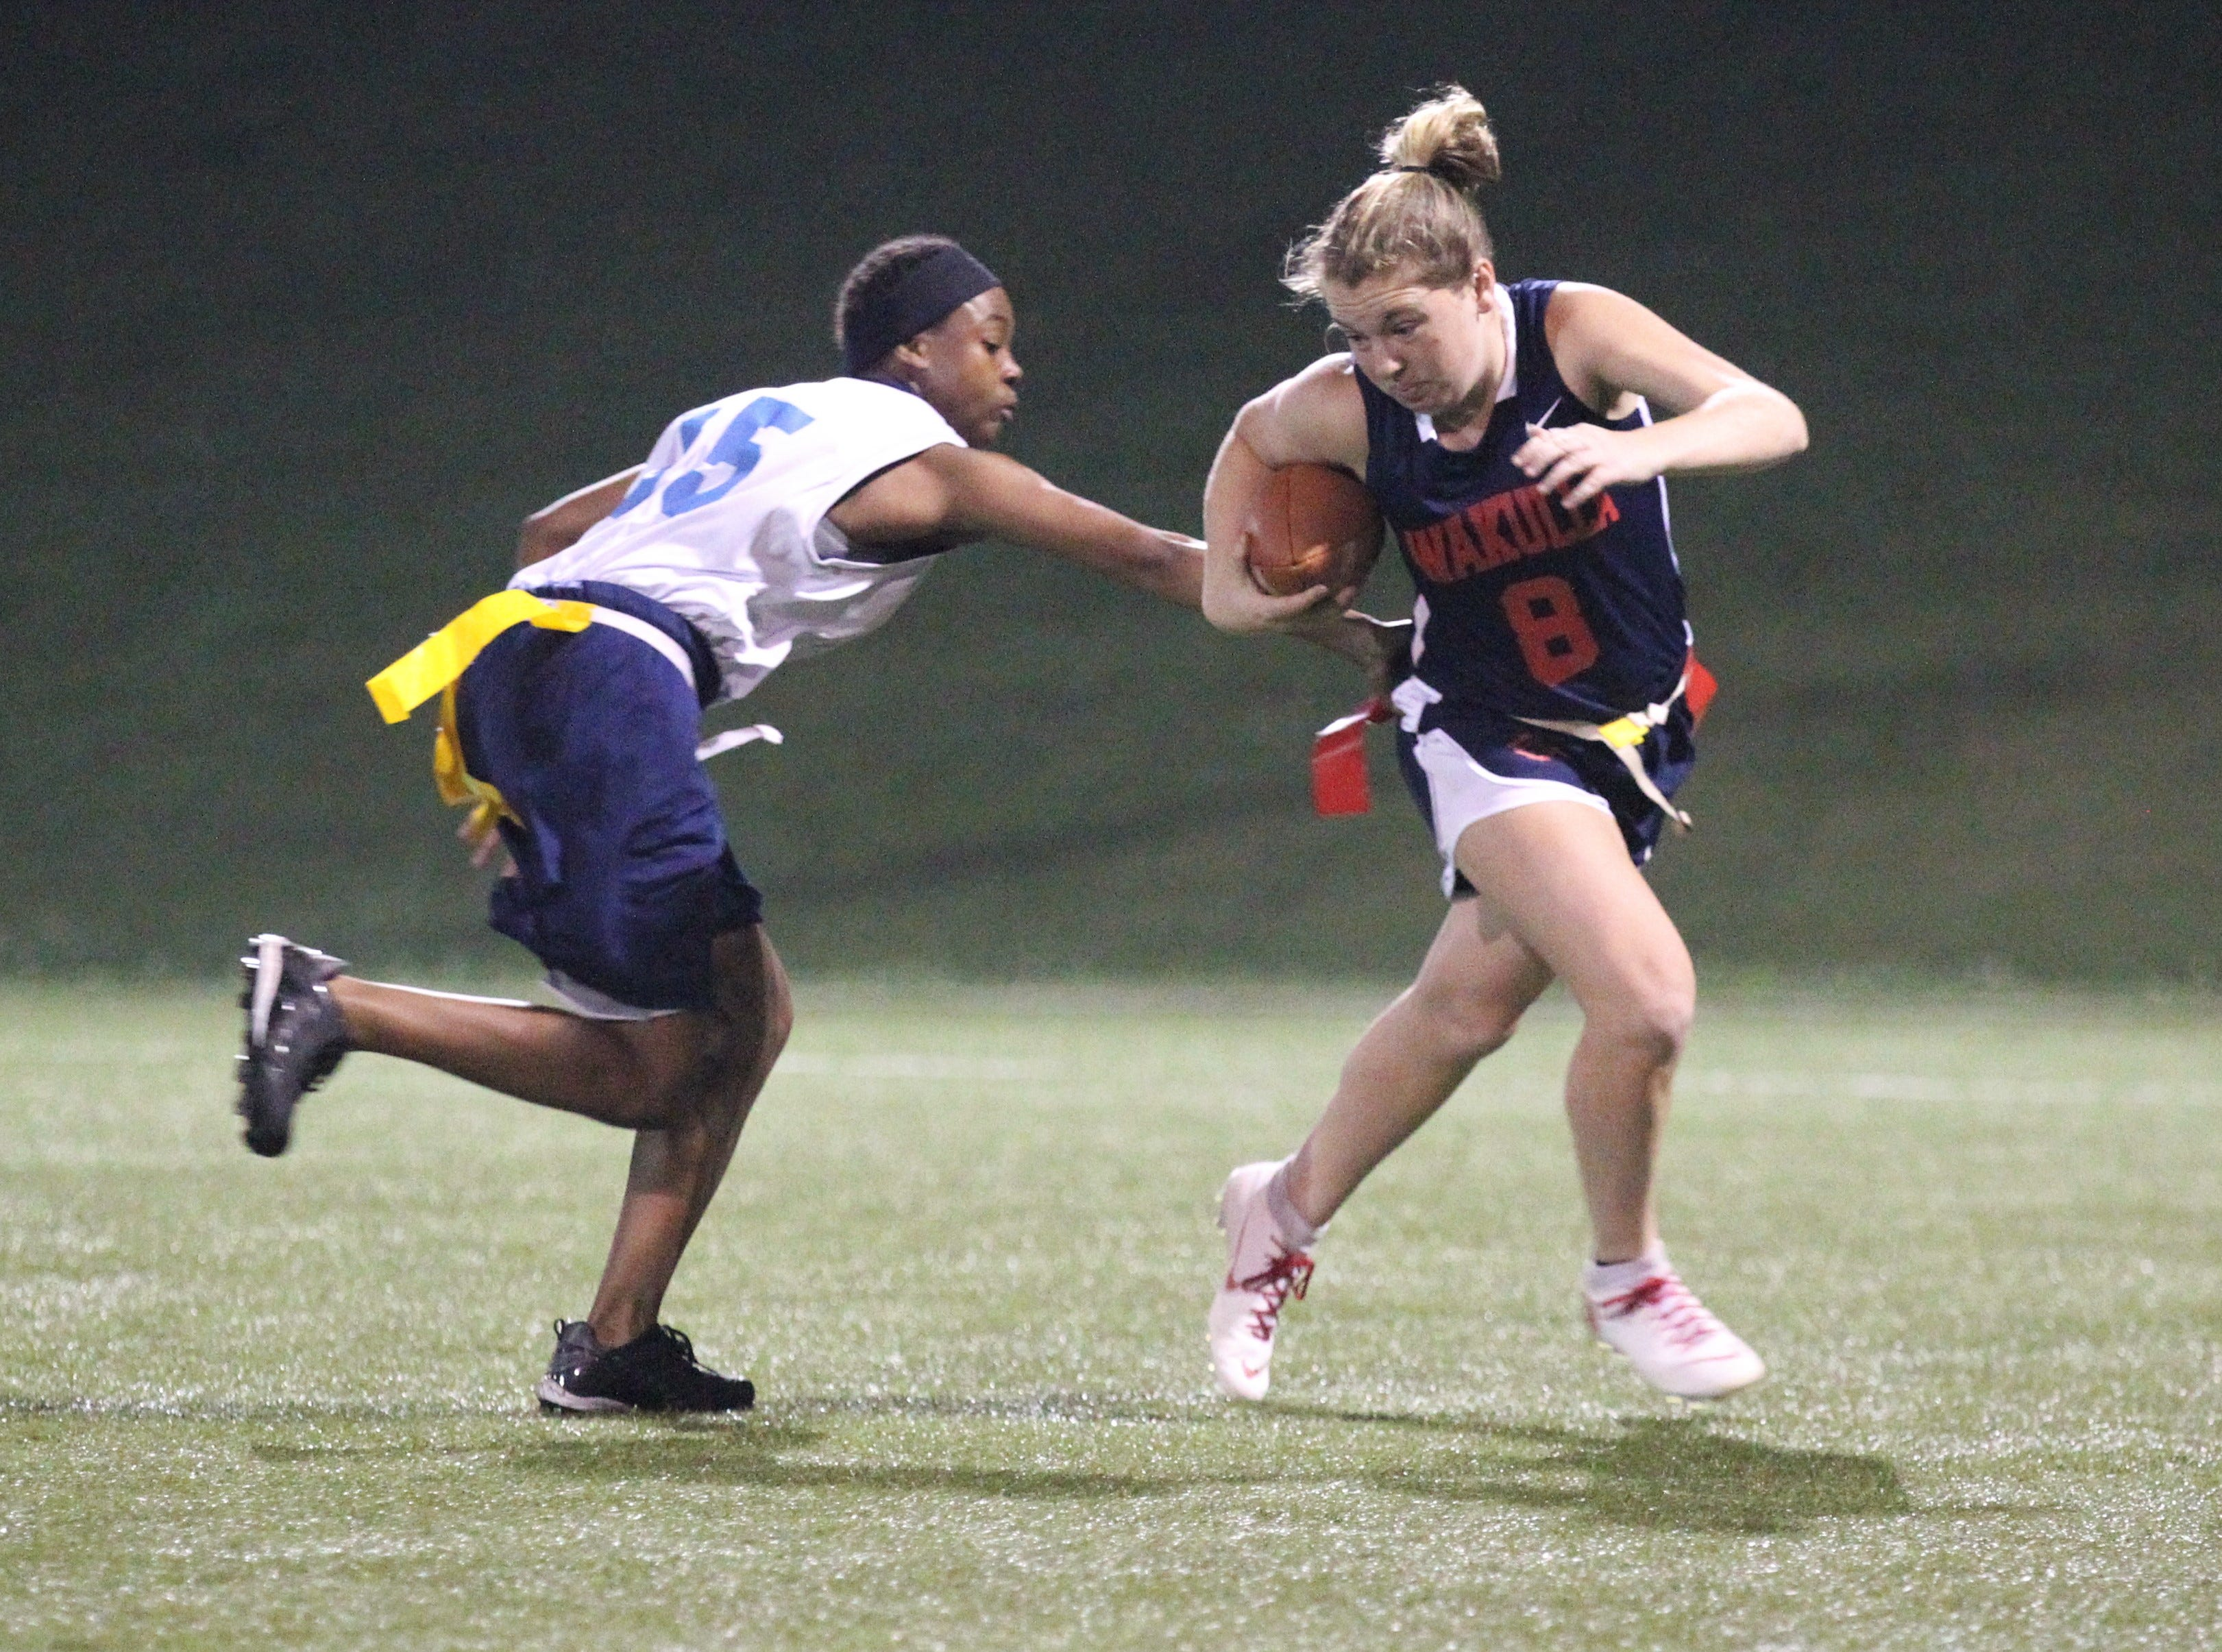 Wakulla quarterback Caitlyn Cason tries to escape a sack as the War Eagles and Gadsden County play during the 2019 flag football preseason classic at Florida A&M's intramural turf fields on Feb. 27, 2019.